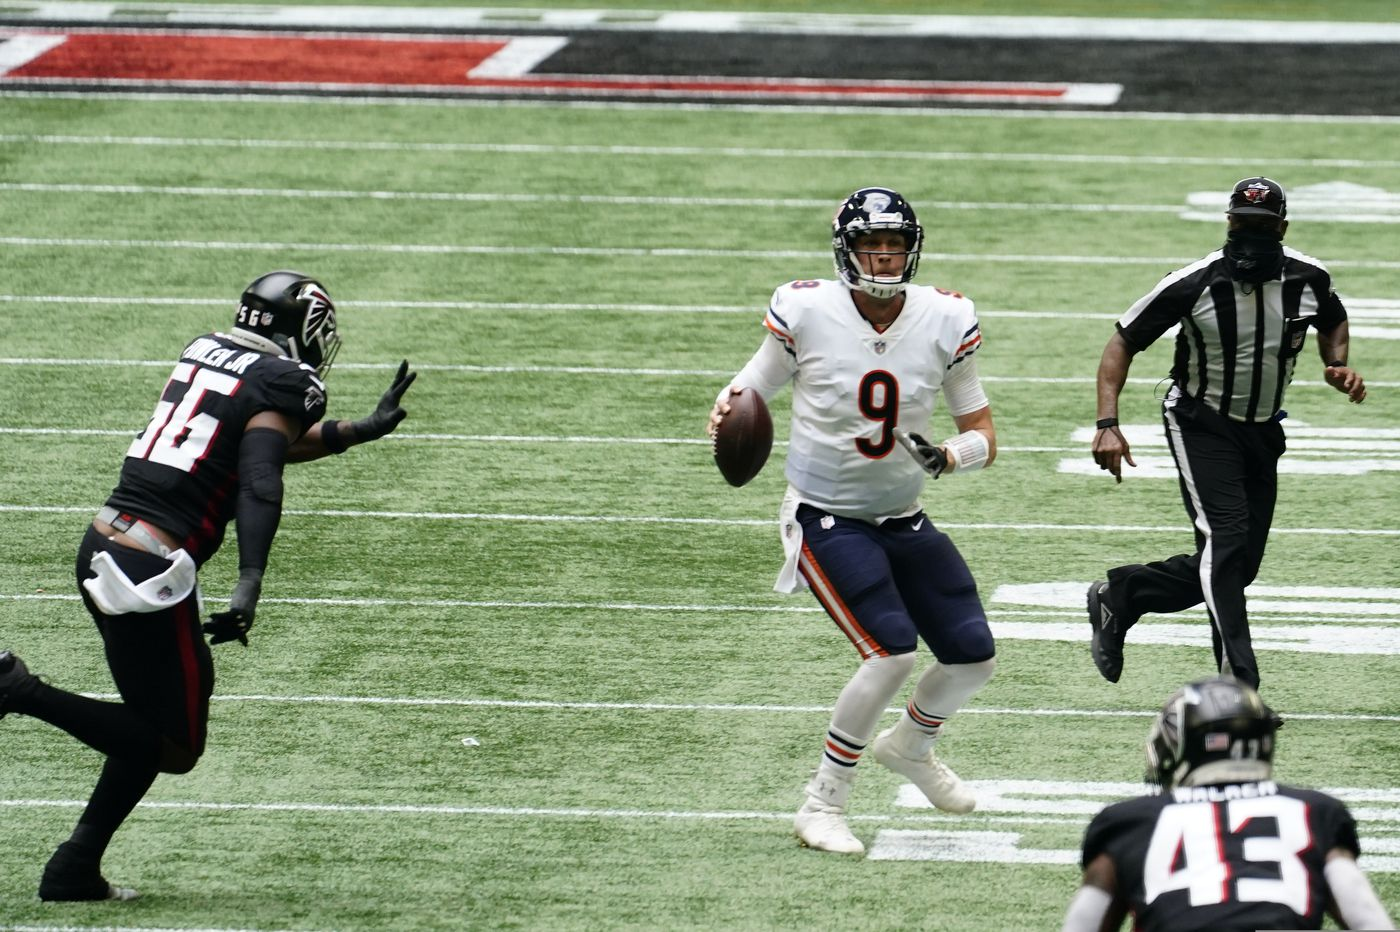 Nick Foles channels his Eagles days in leading the Bears to a dramatic fourth-quarter comeback win, and more NFL news